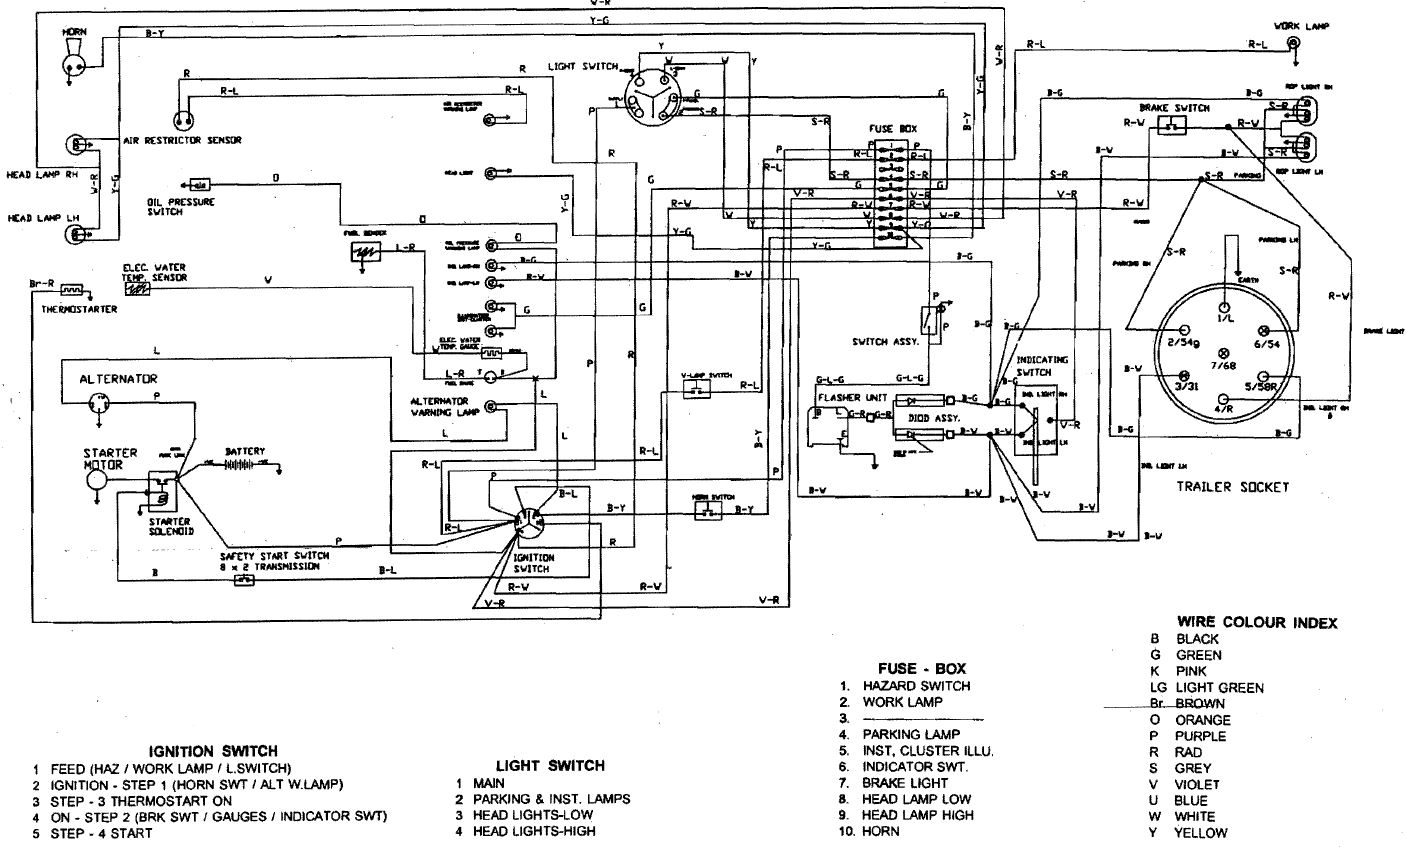 04 international wiring diagram ignition switch wiring diagram  ignition switch wiring diagram